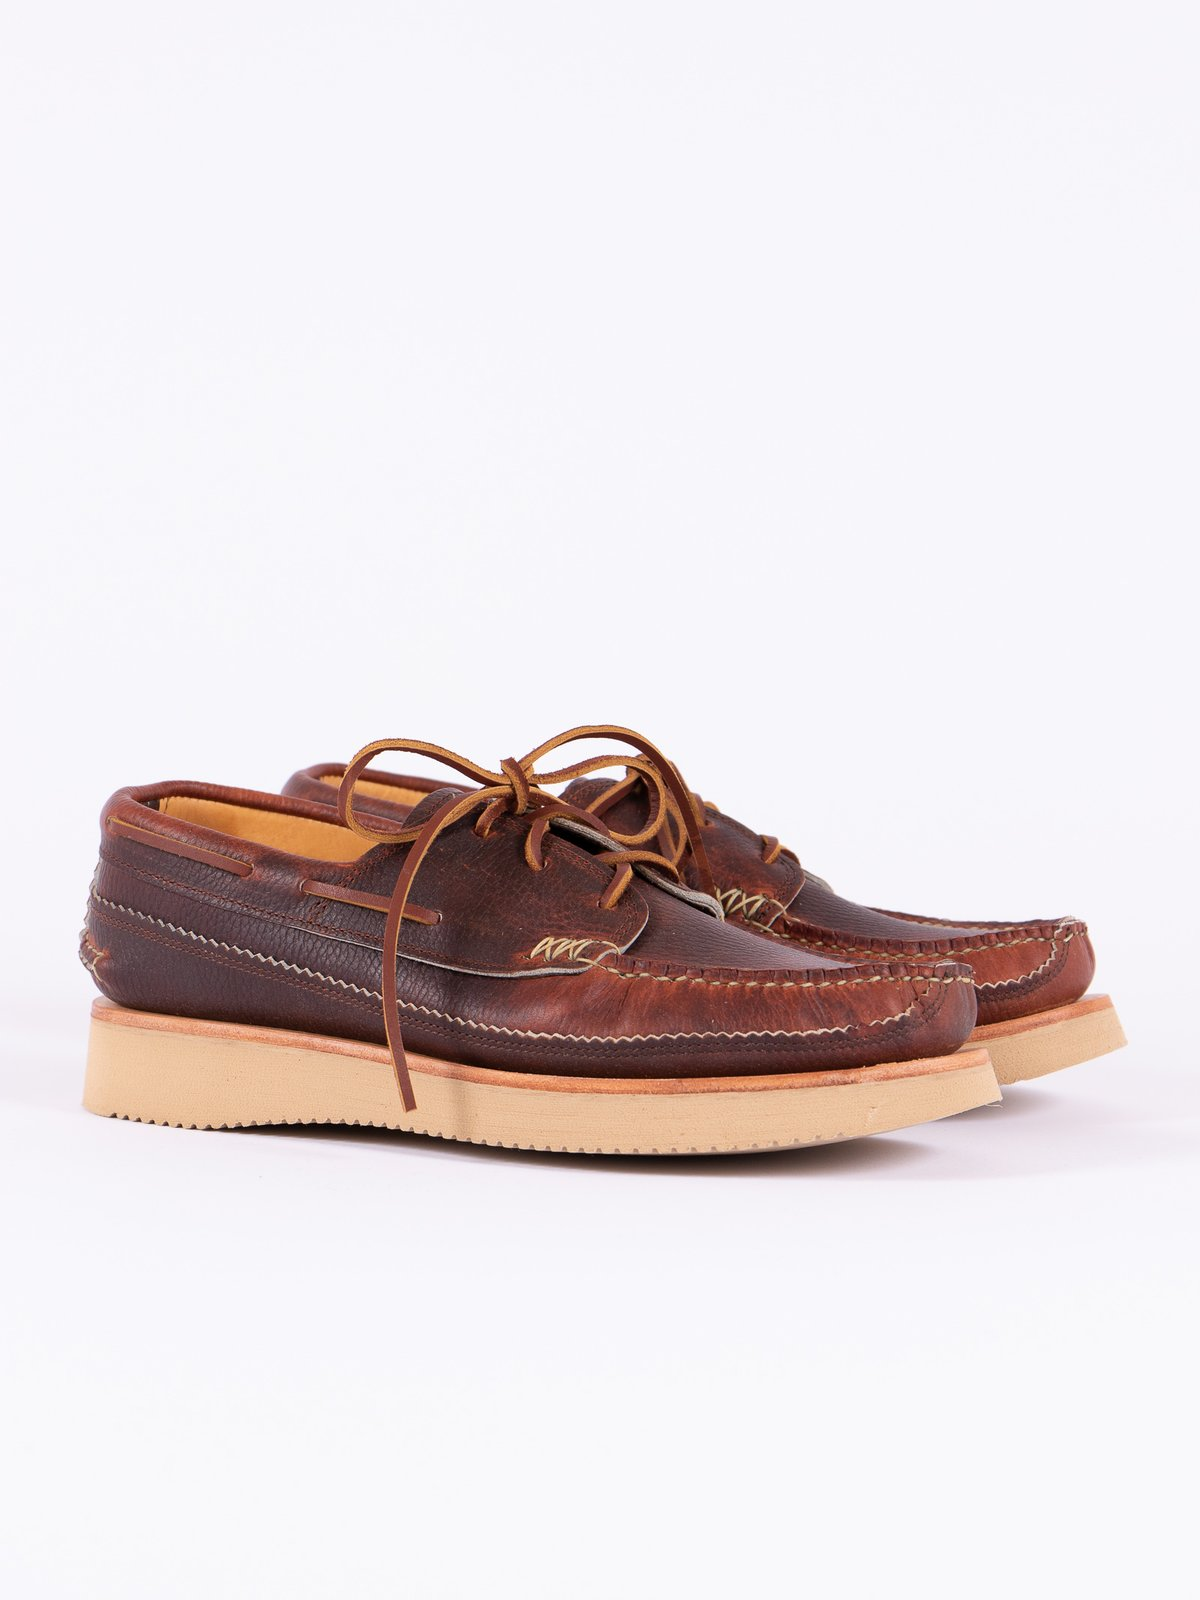 Chromepak Brown Boat Shoe Exclusive - Image 1